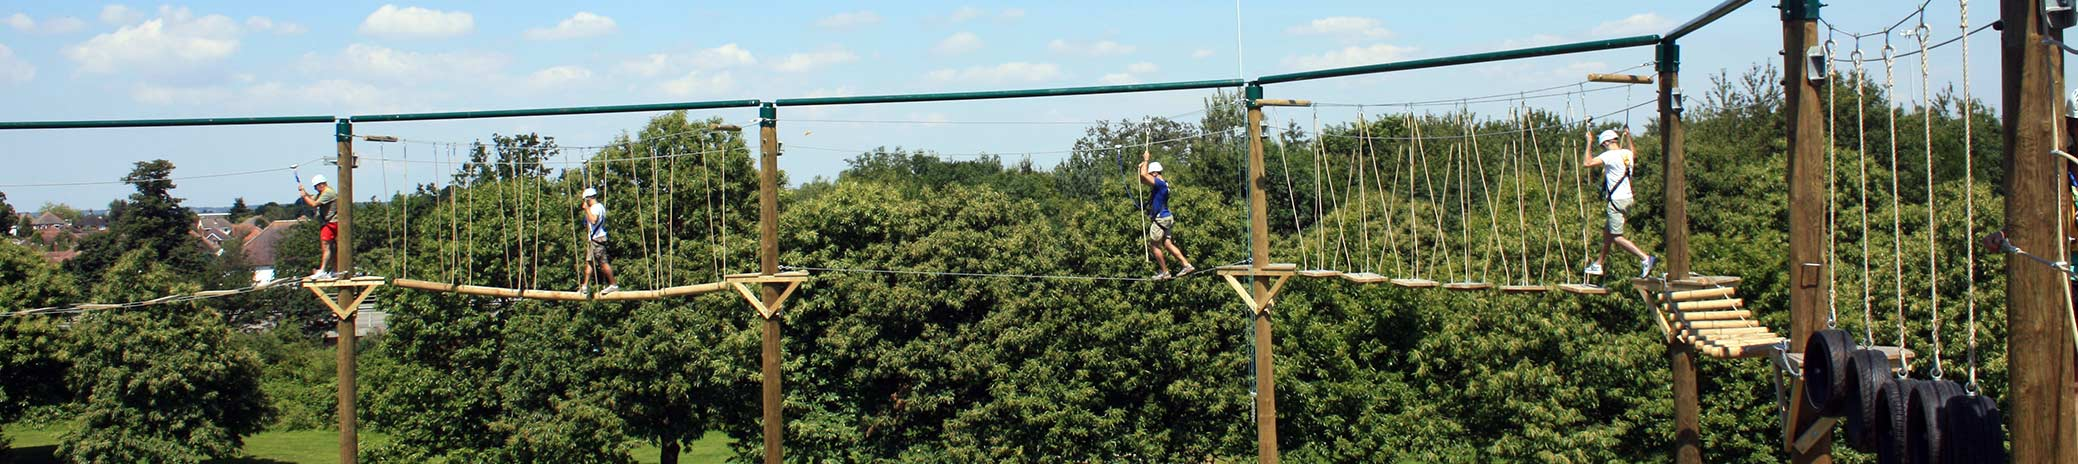 Days Out In Bournemouth Altitude High Ropes Adventure